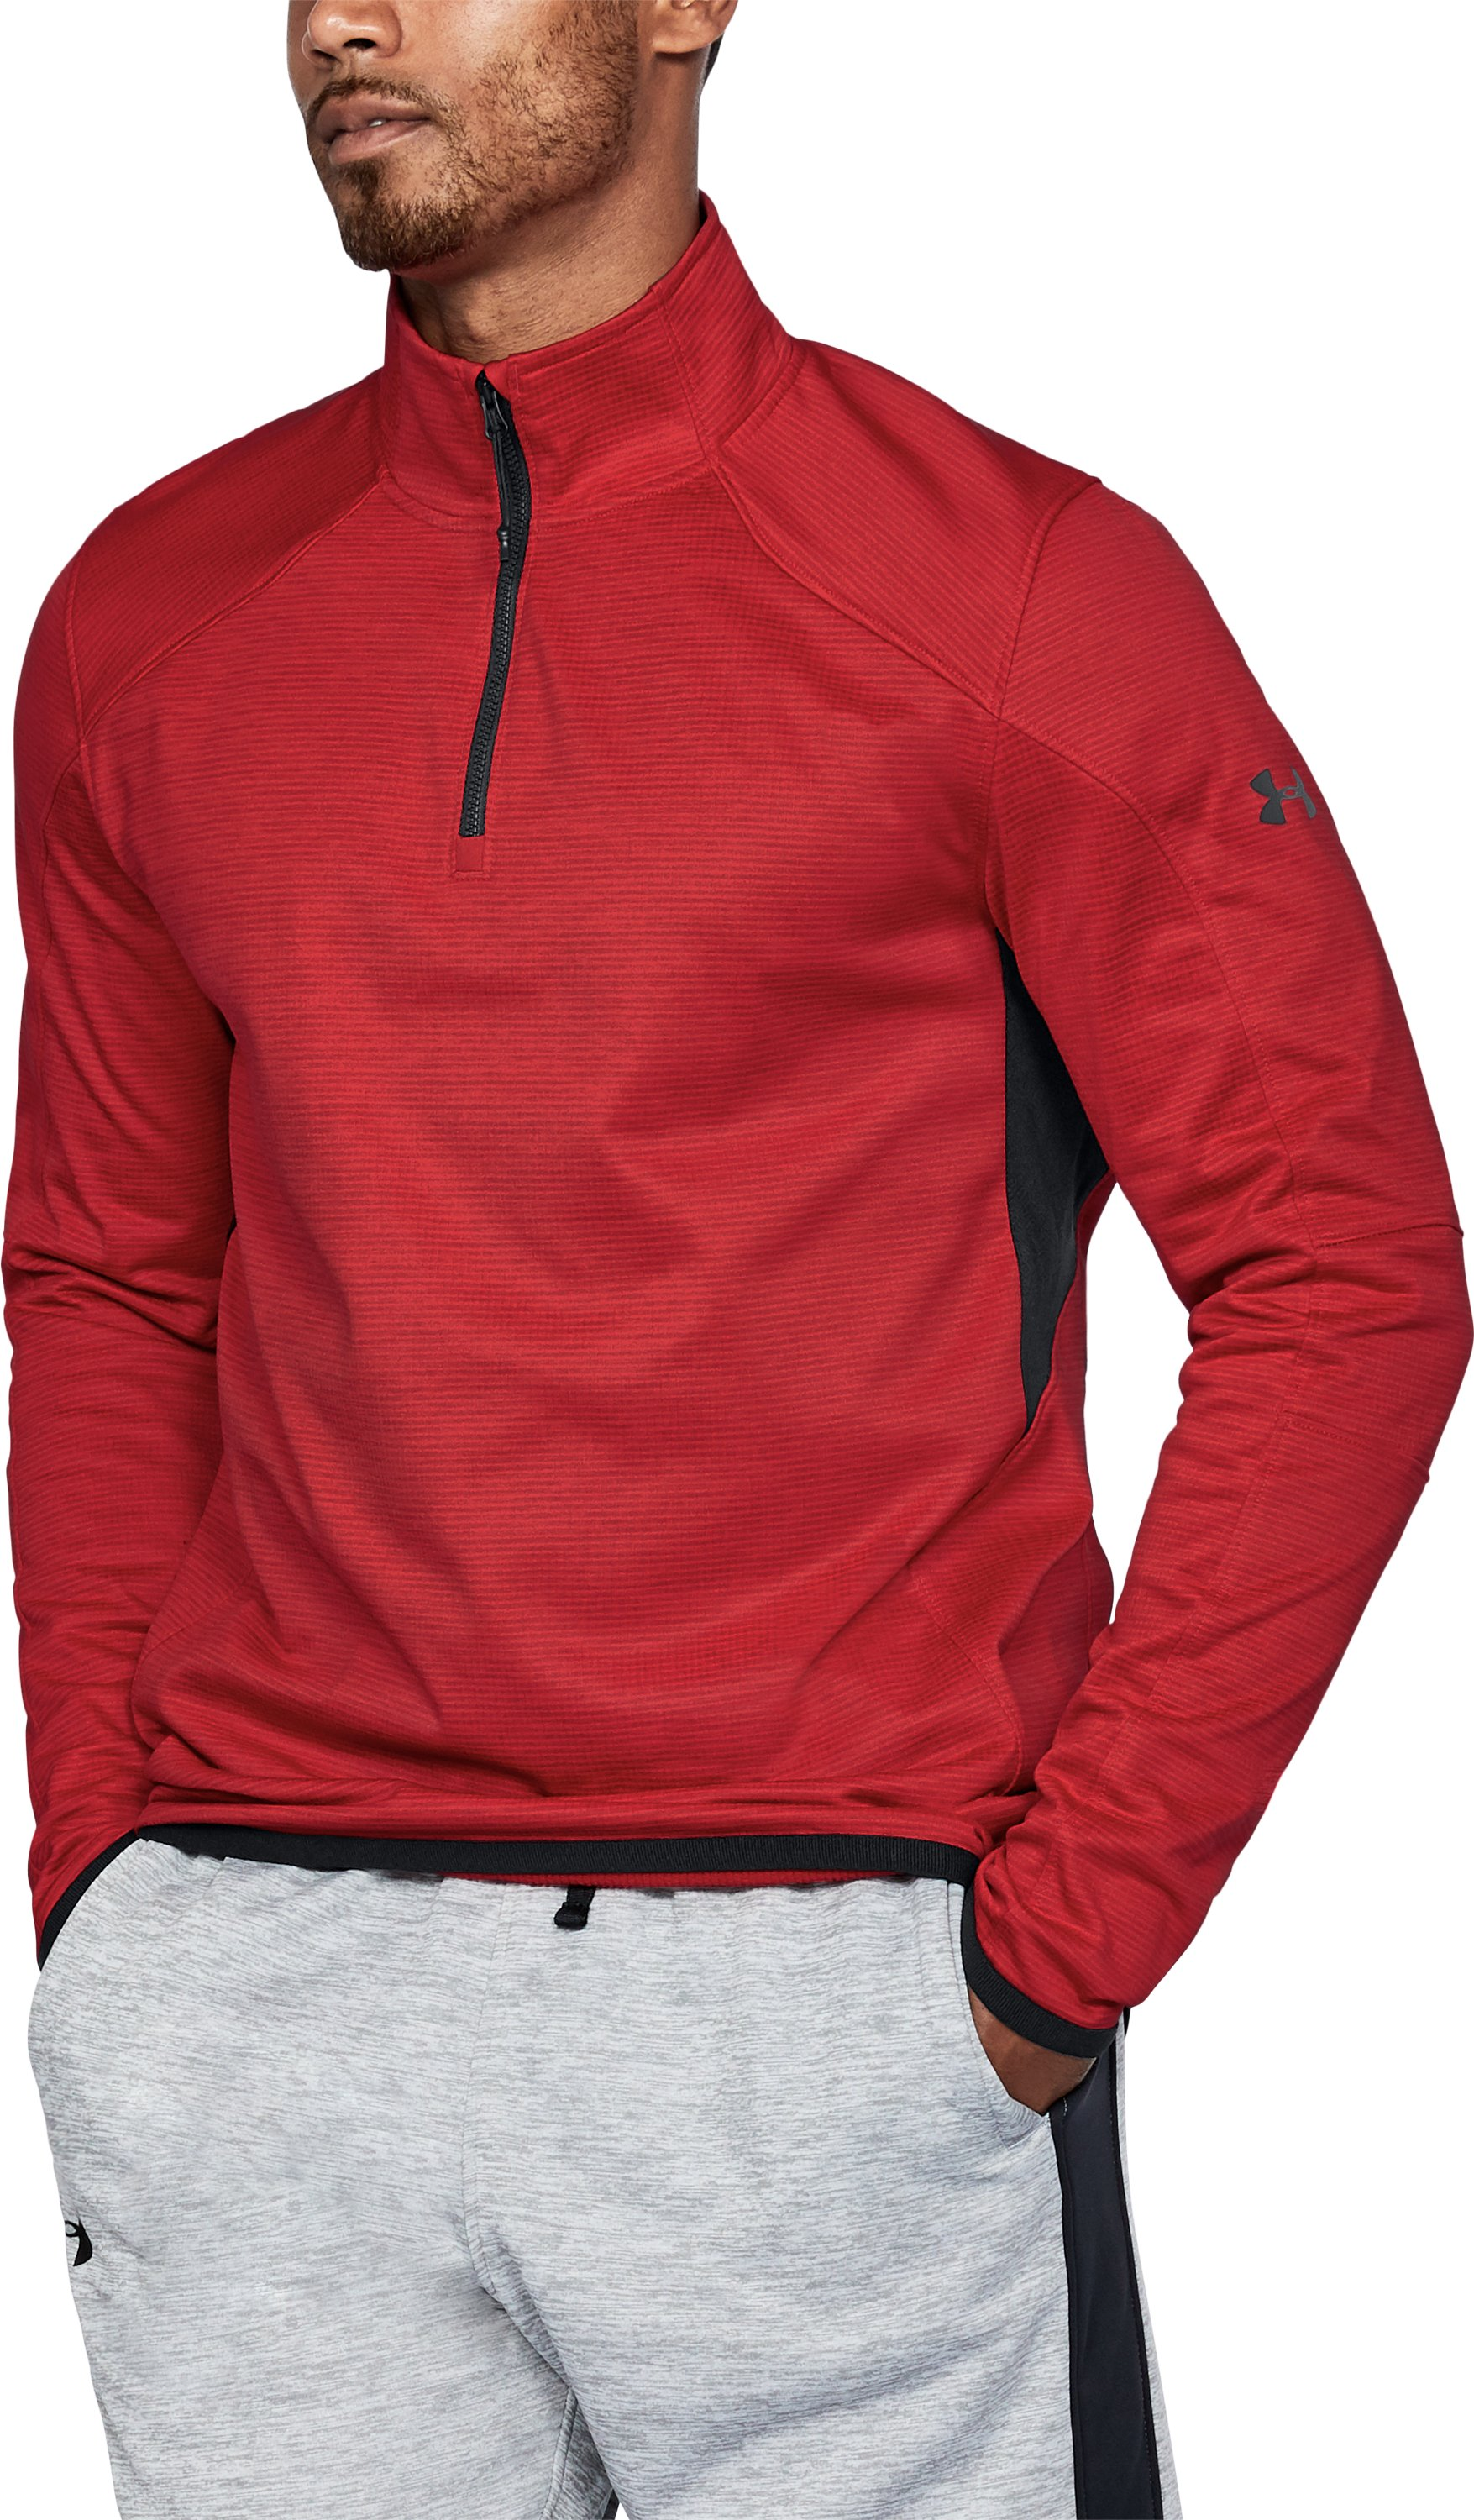 Men's ColdGear® Reactor Fleece ¼ Zip 9 Colors $41.99